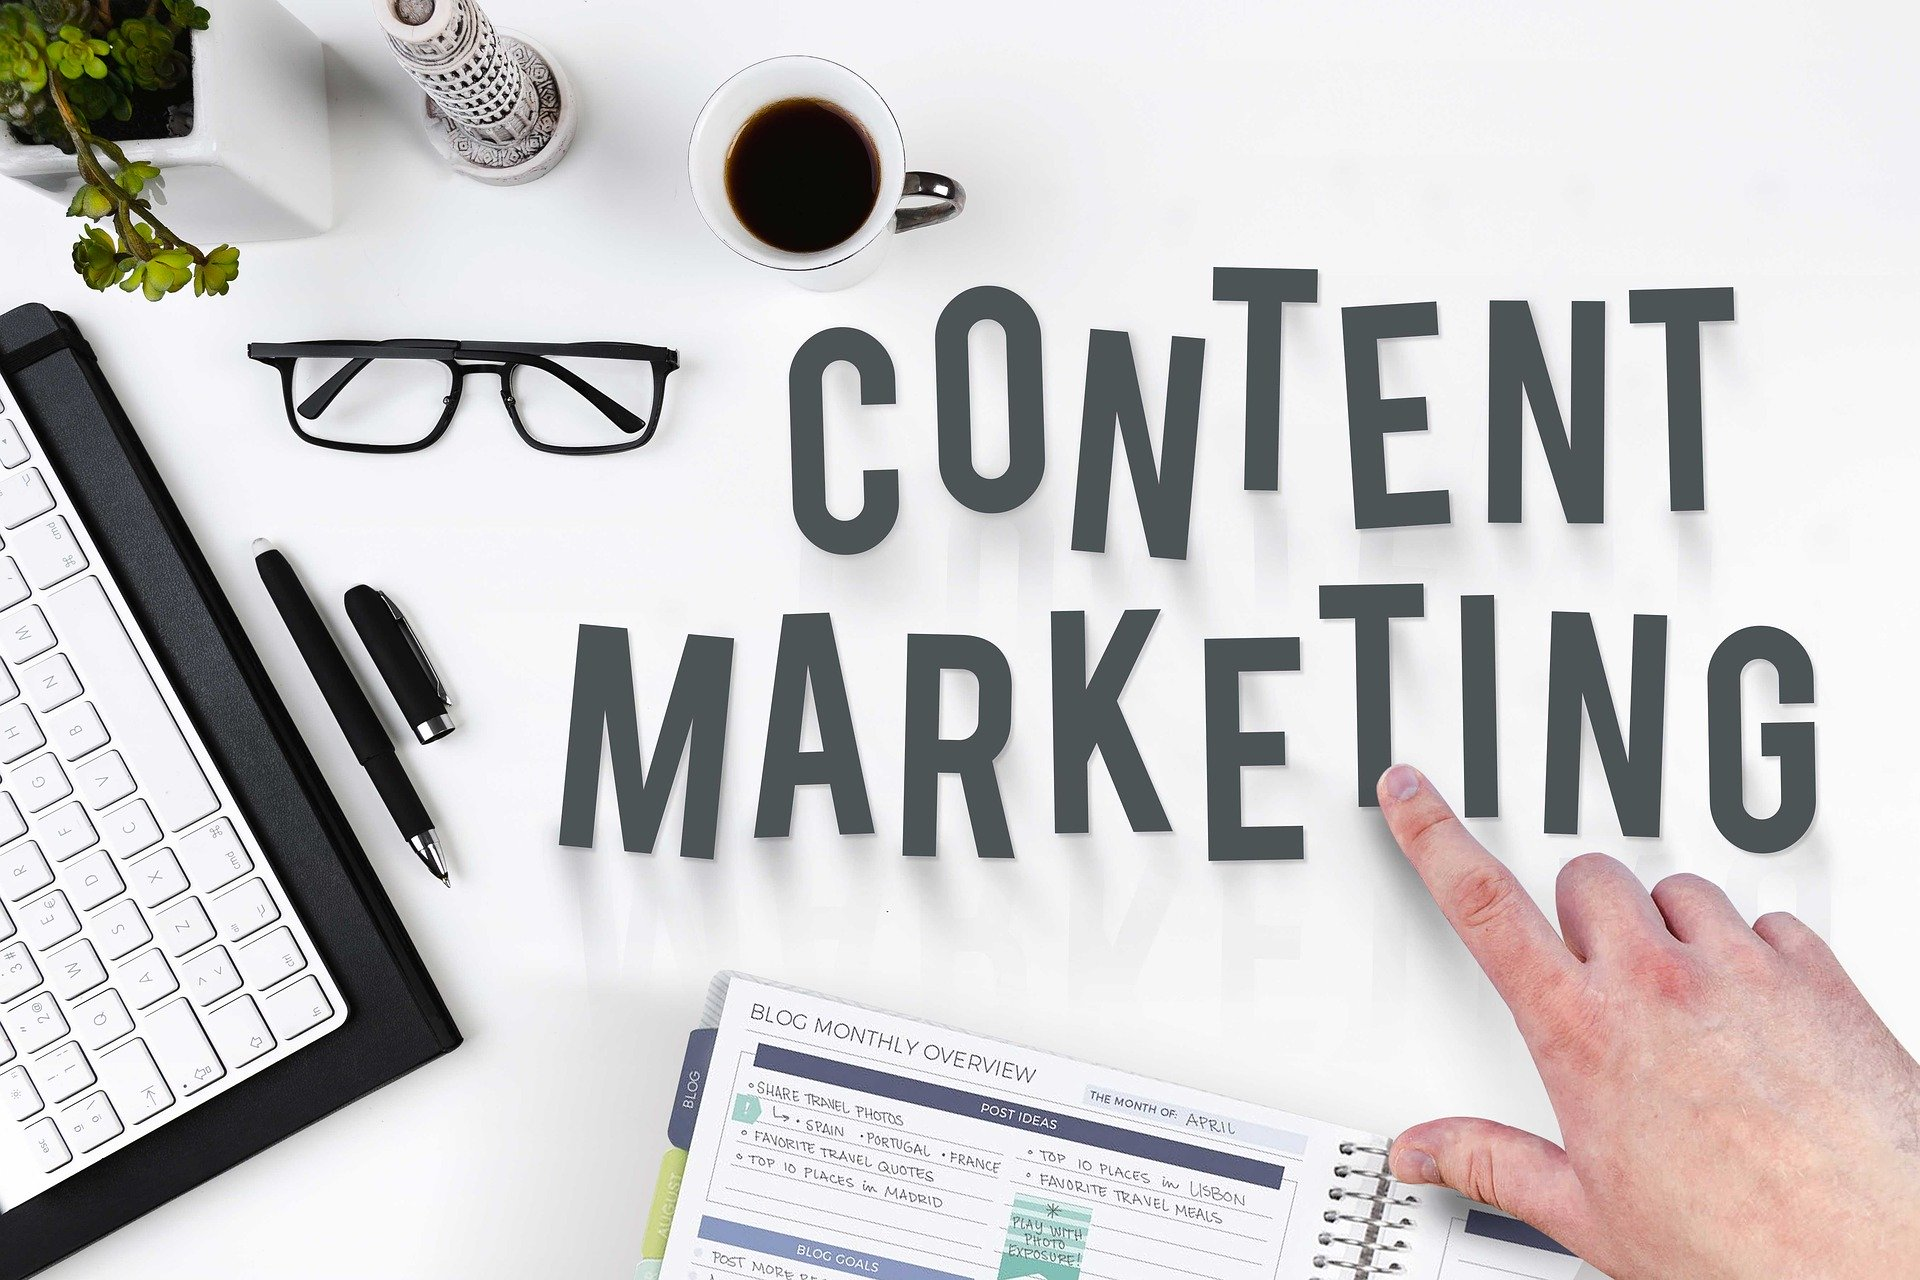 Tips to selecting the best Content Marketing agency